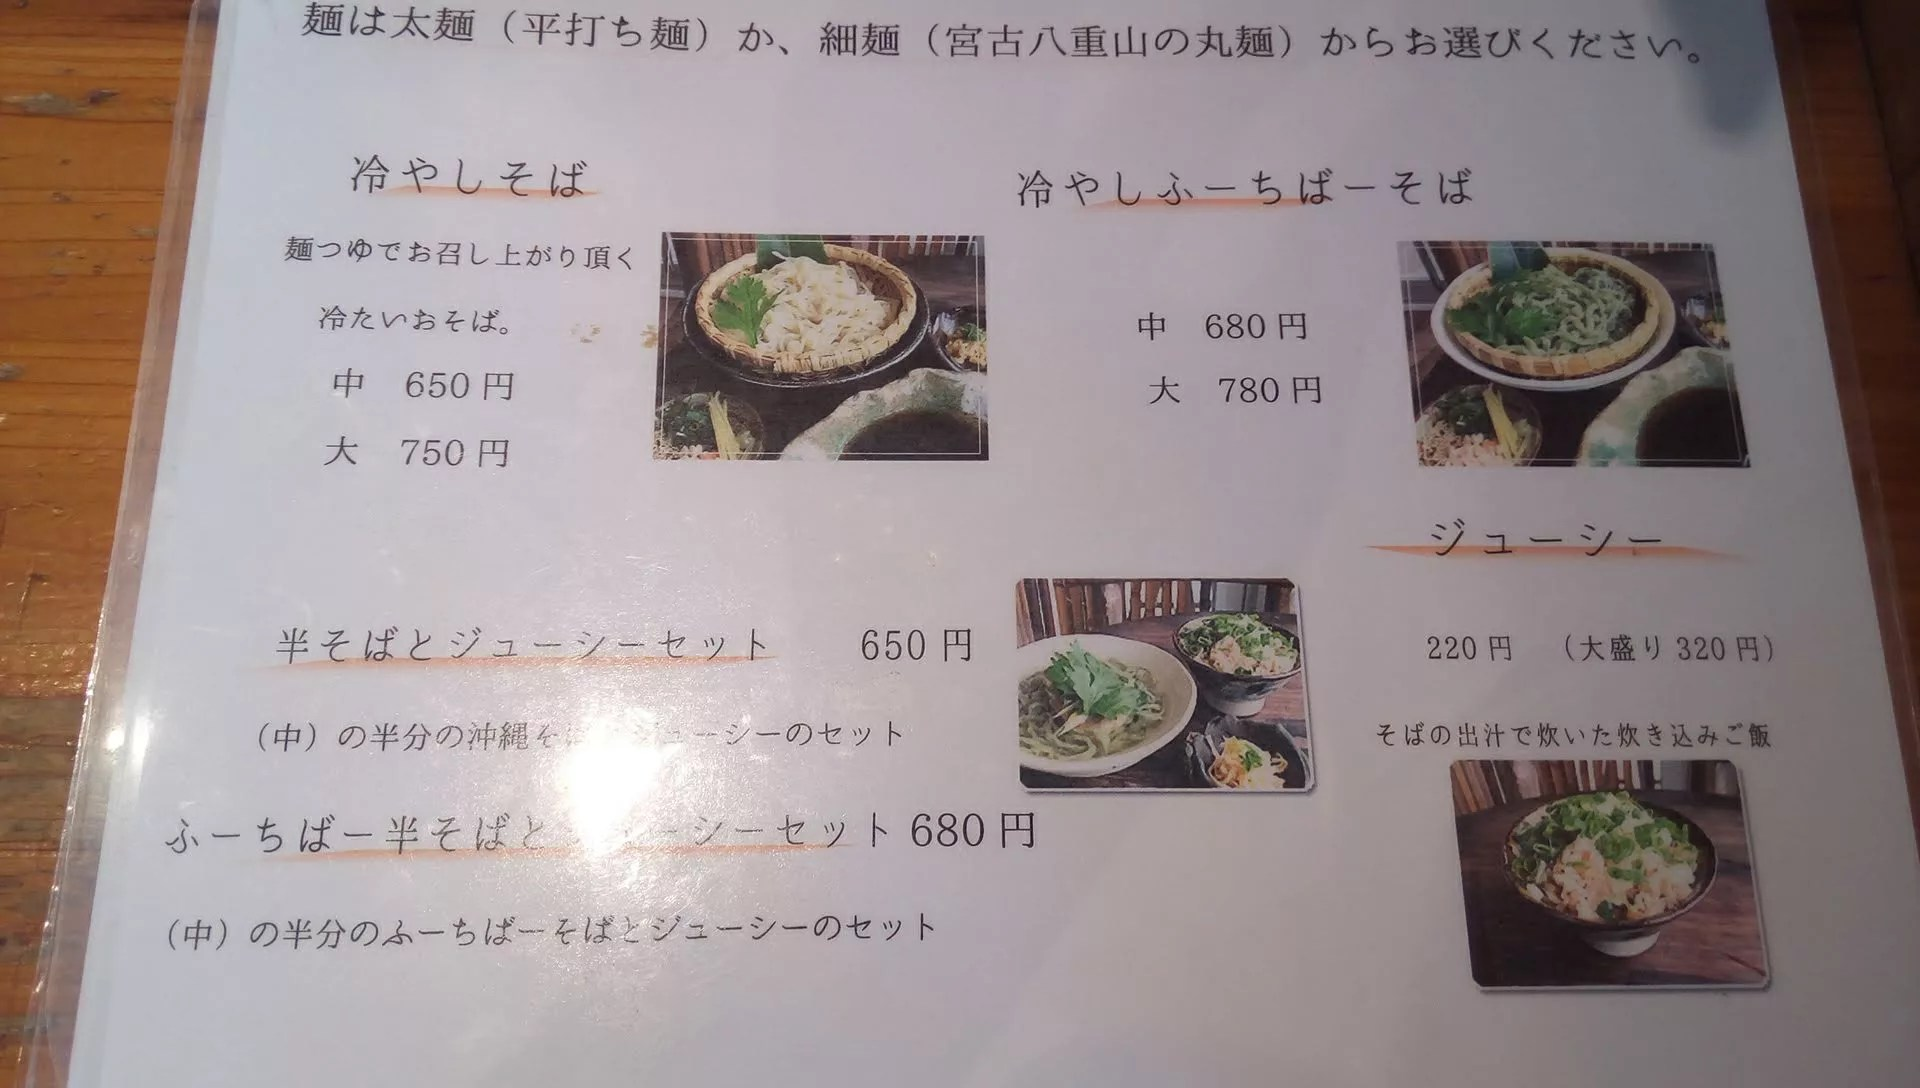 the menu of Teianda 3